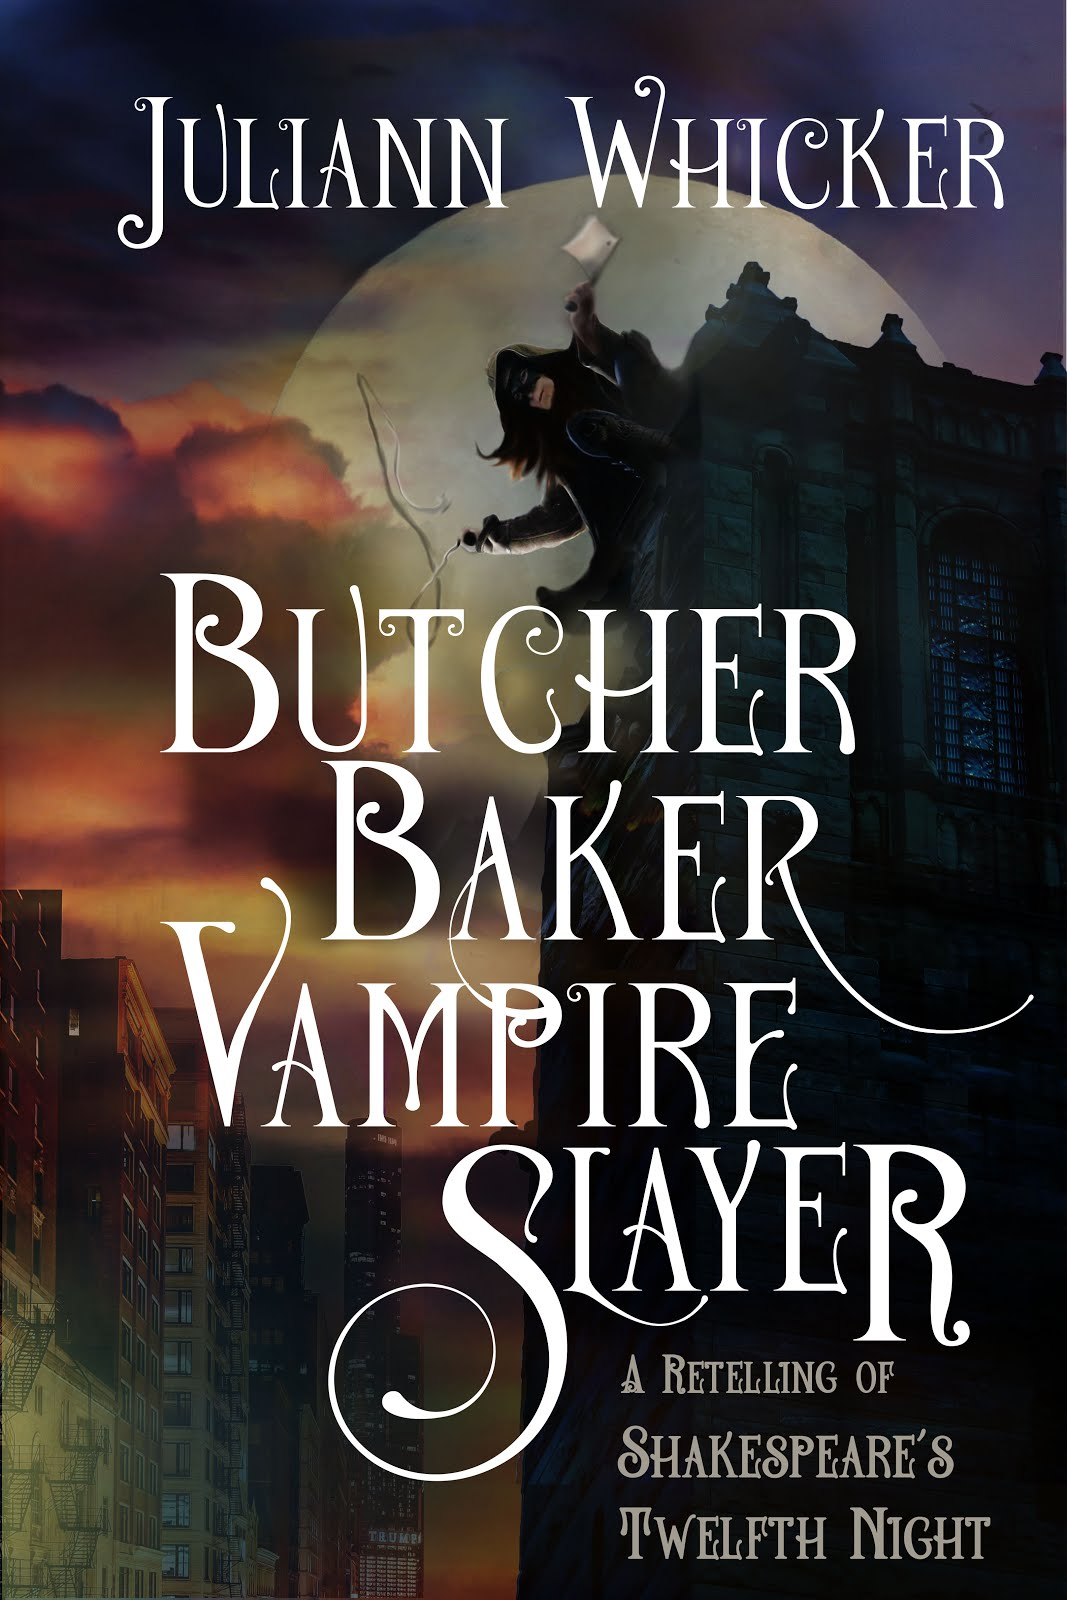 Butcher, Baker, Vampire Slayer